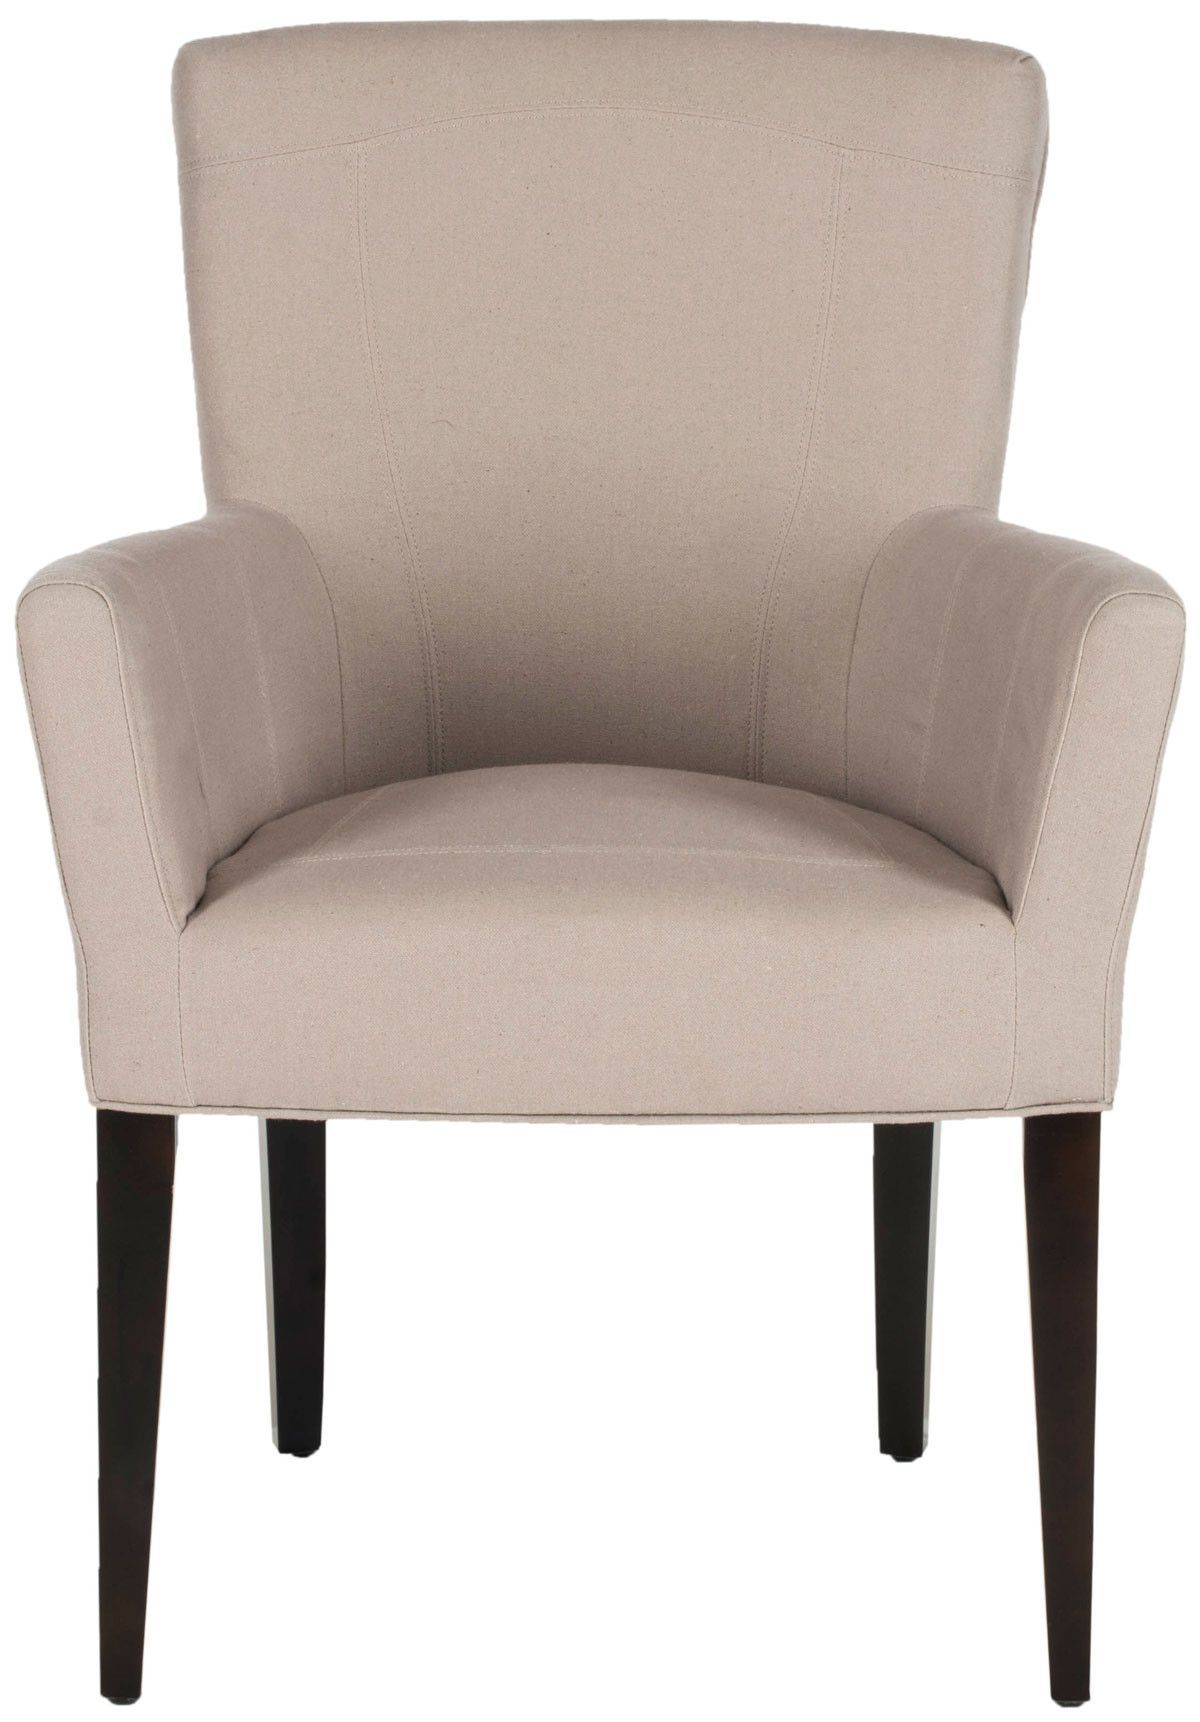 Dale Arm Chair In Linen On Wood Legs